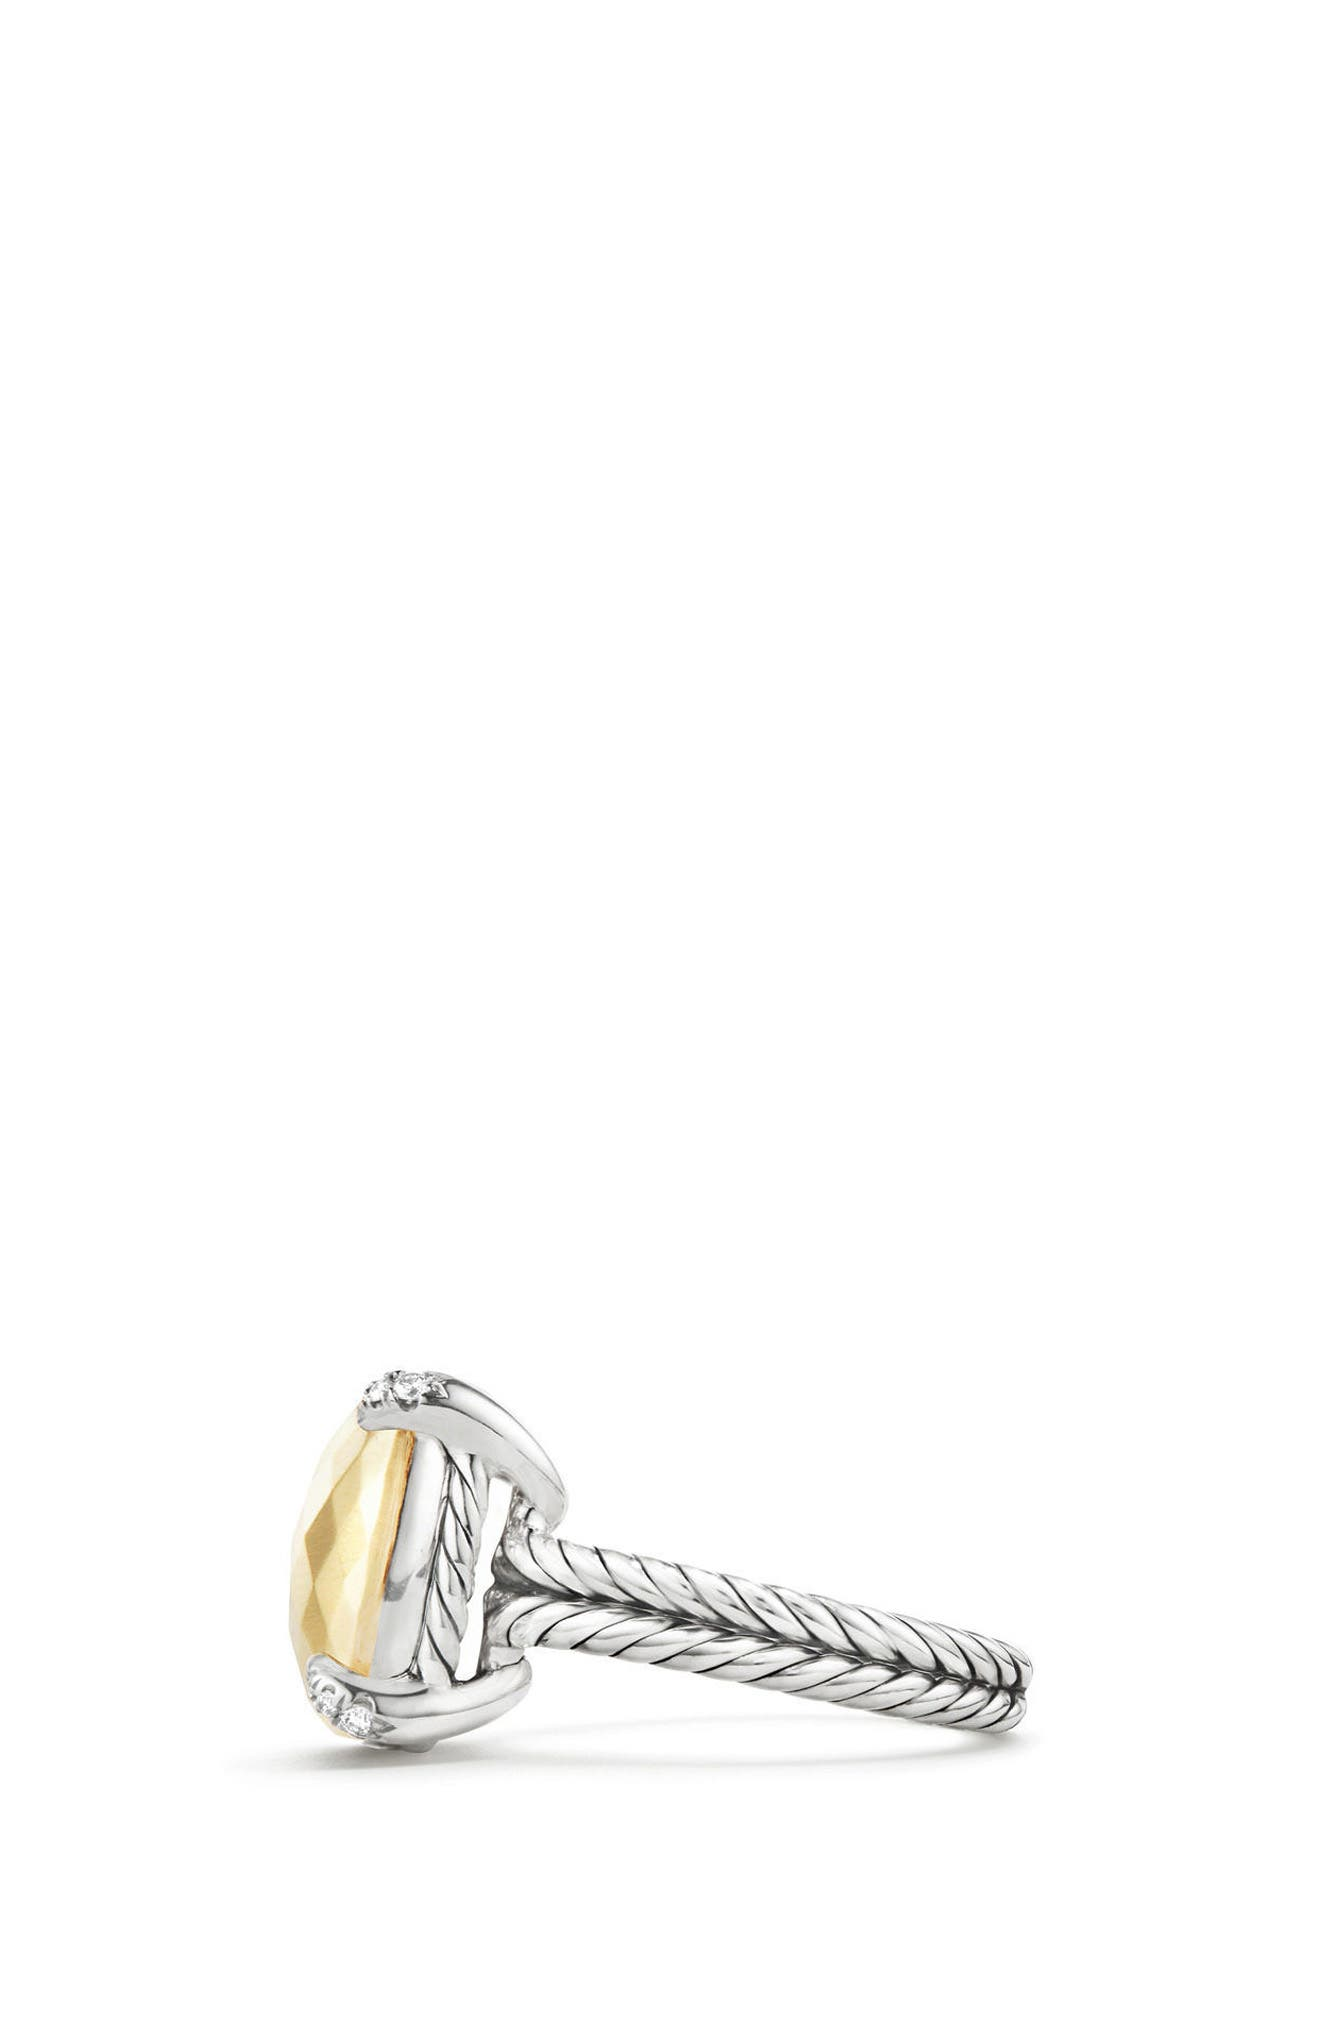 Chatelaine Ring with 18K Gold and Diamonds,                             Alternate thumbnail 2, color,                             GOLD DOME